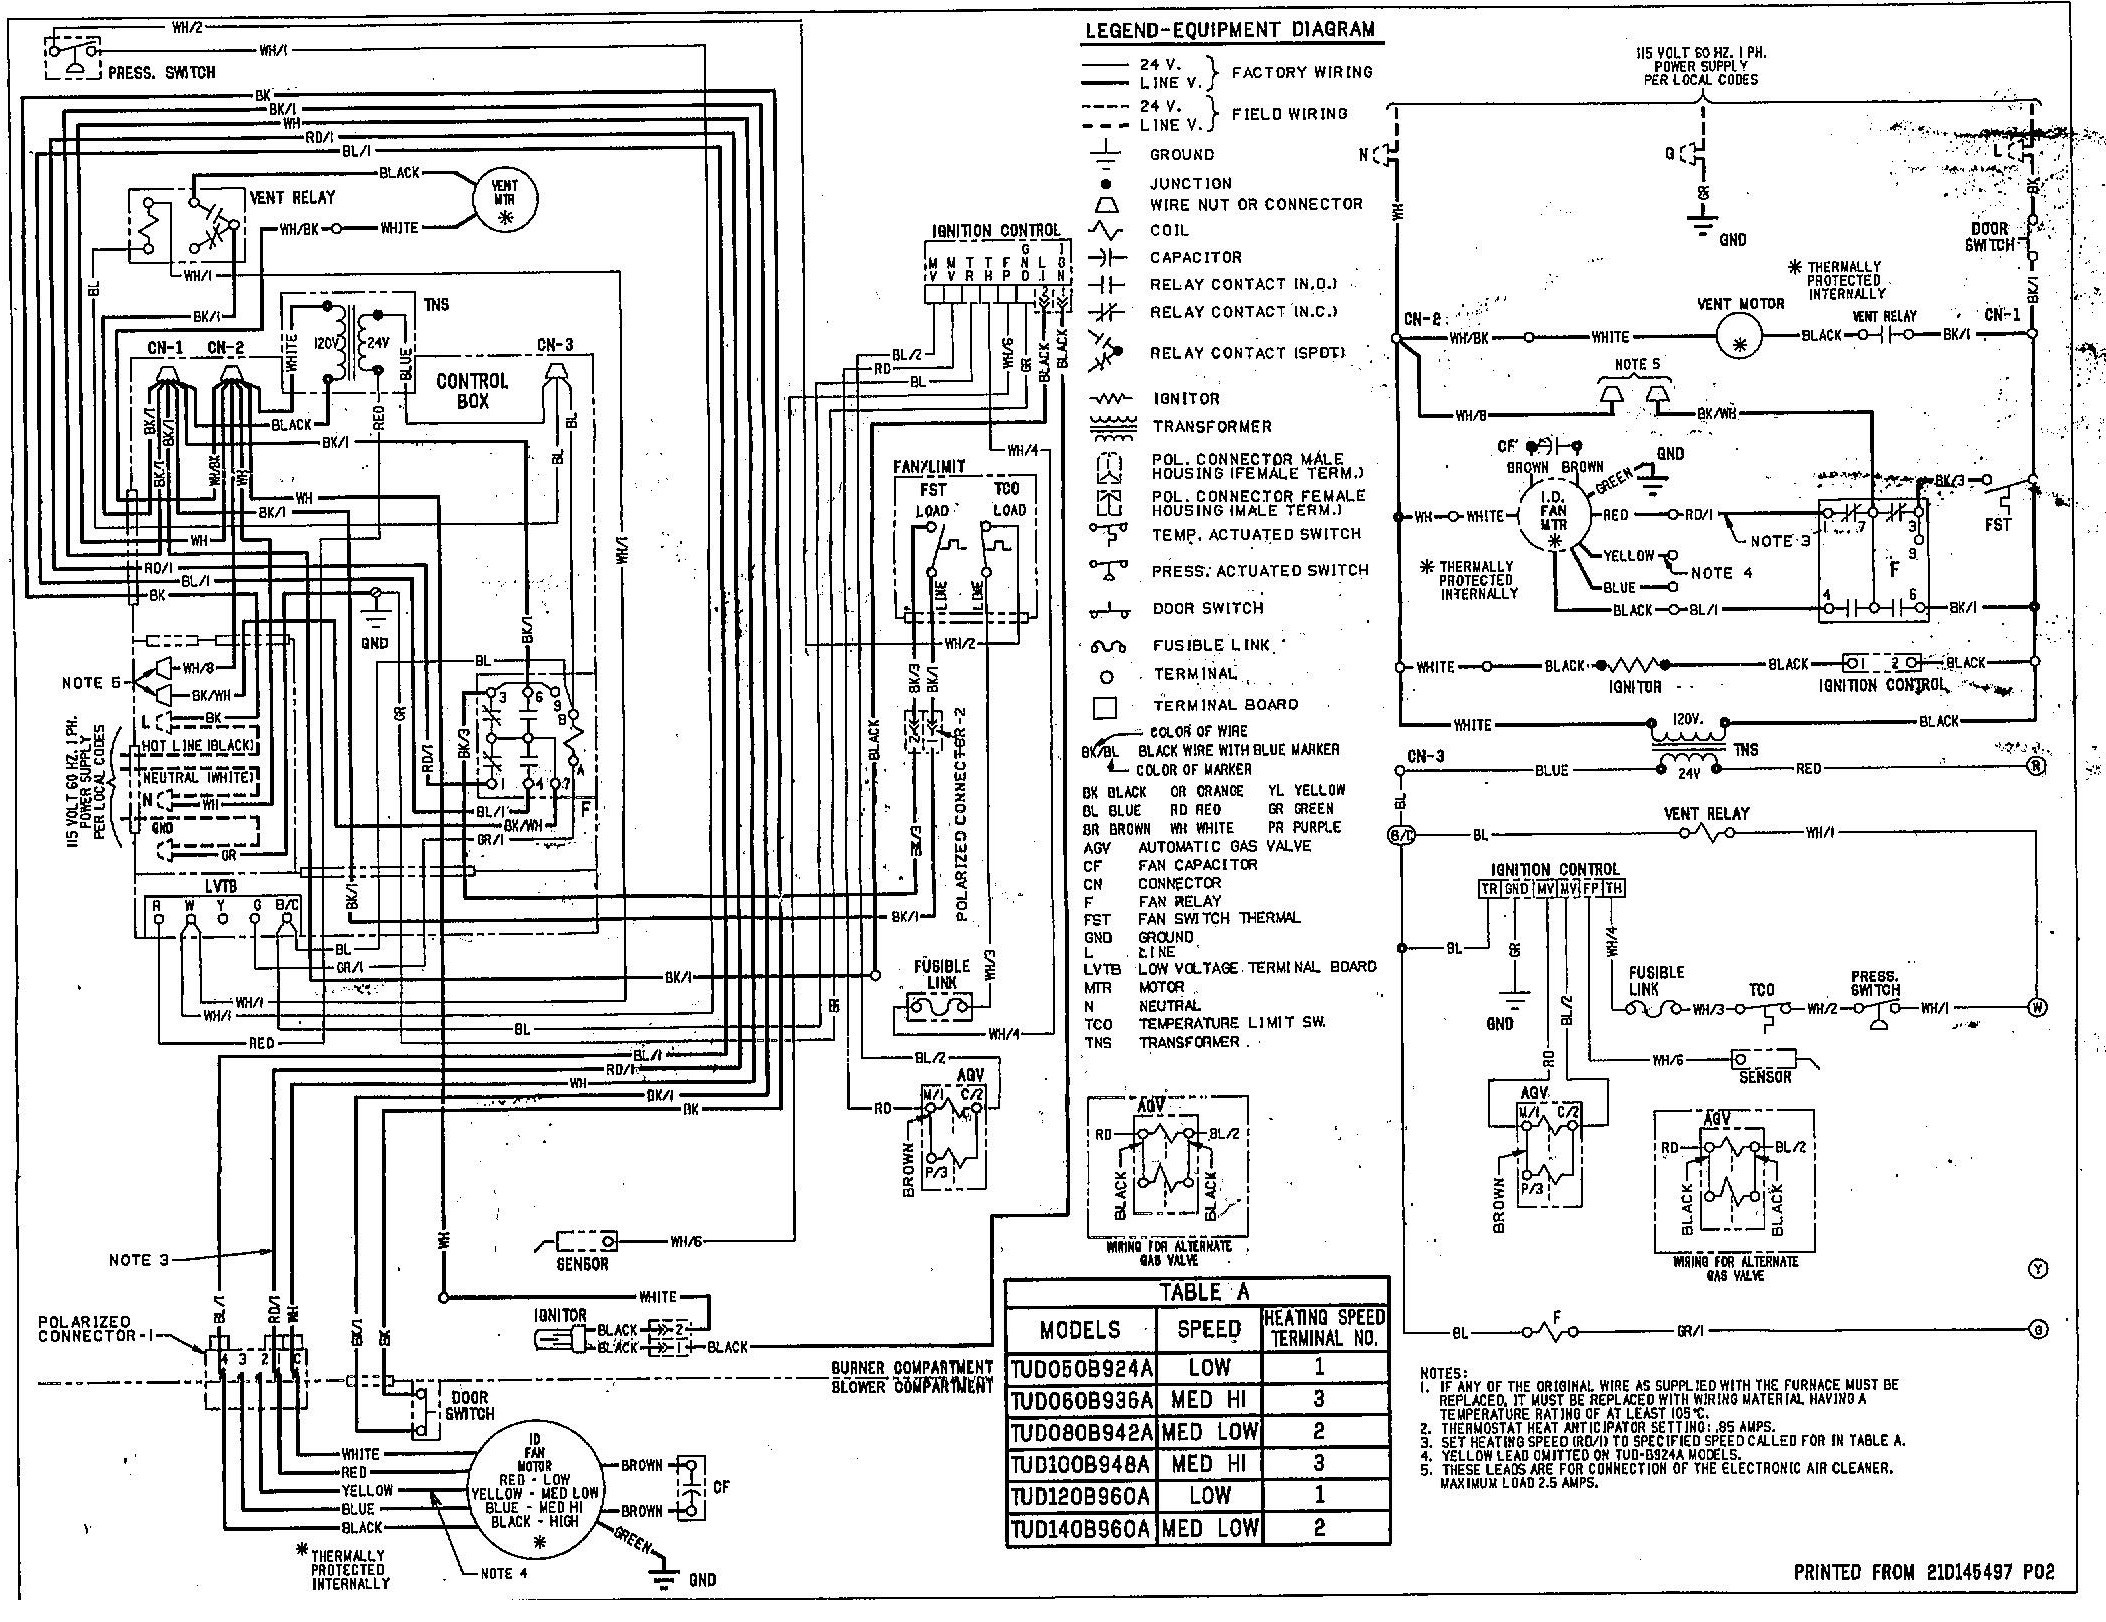 Terrific Reznor Waste Oil Burner Wiring Diagram Basic Electronics Wiring Wiring Digital Resources Zidurslowmaporg